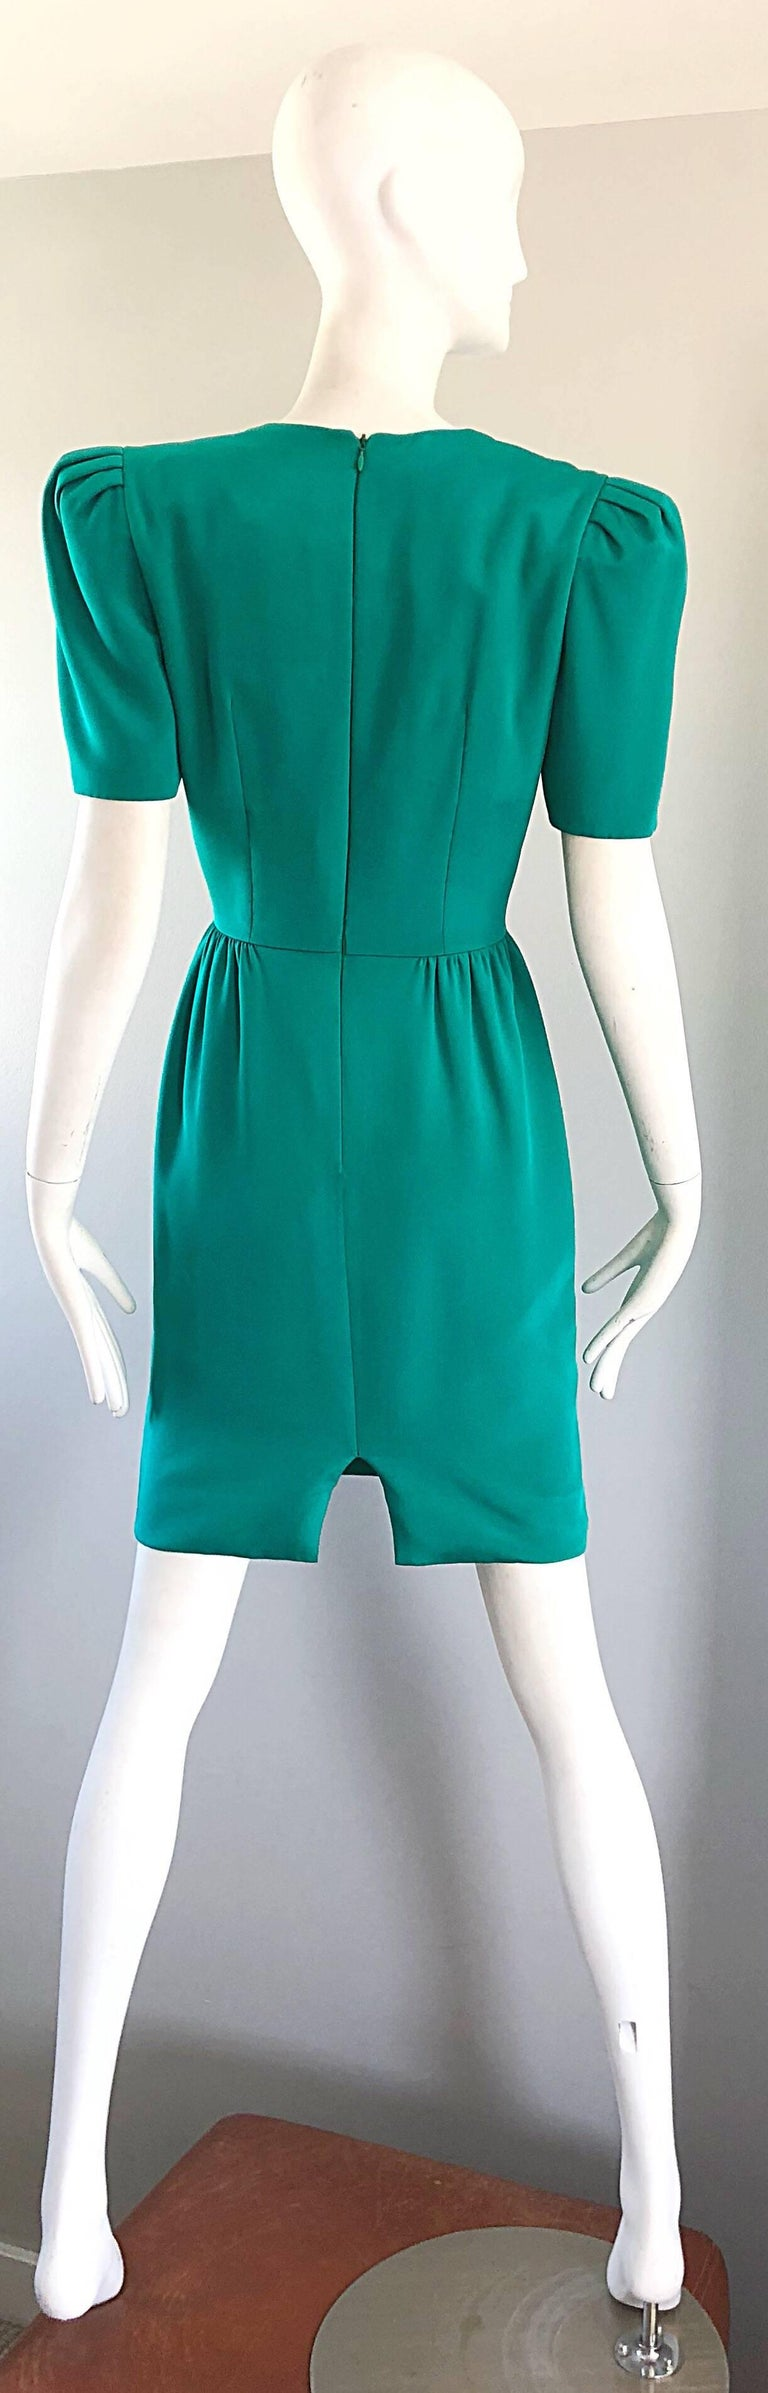 Vintage Carolina Herrera Size 6 1980s Kelly Green Strong